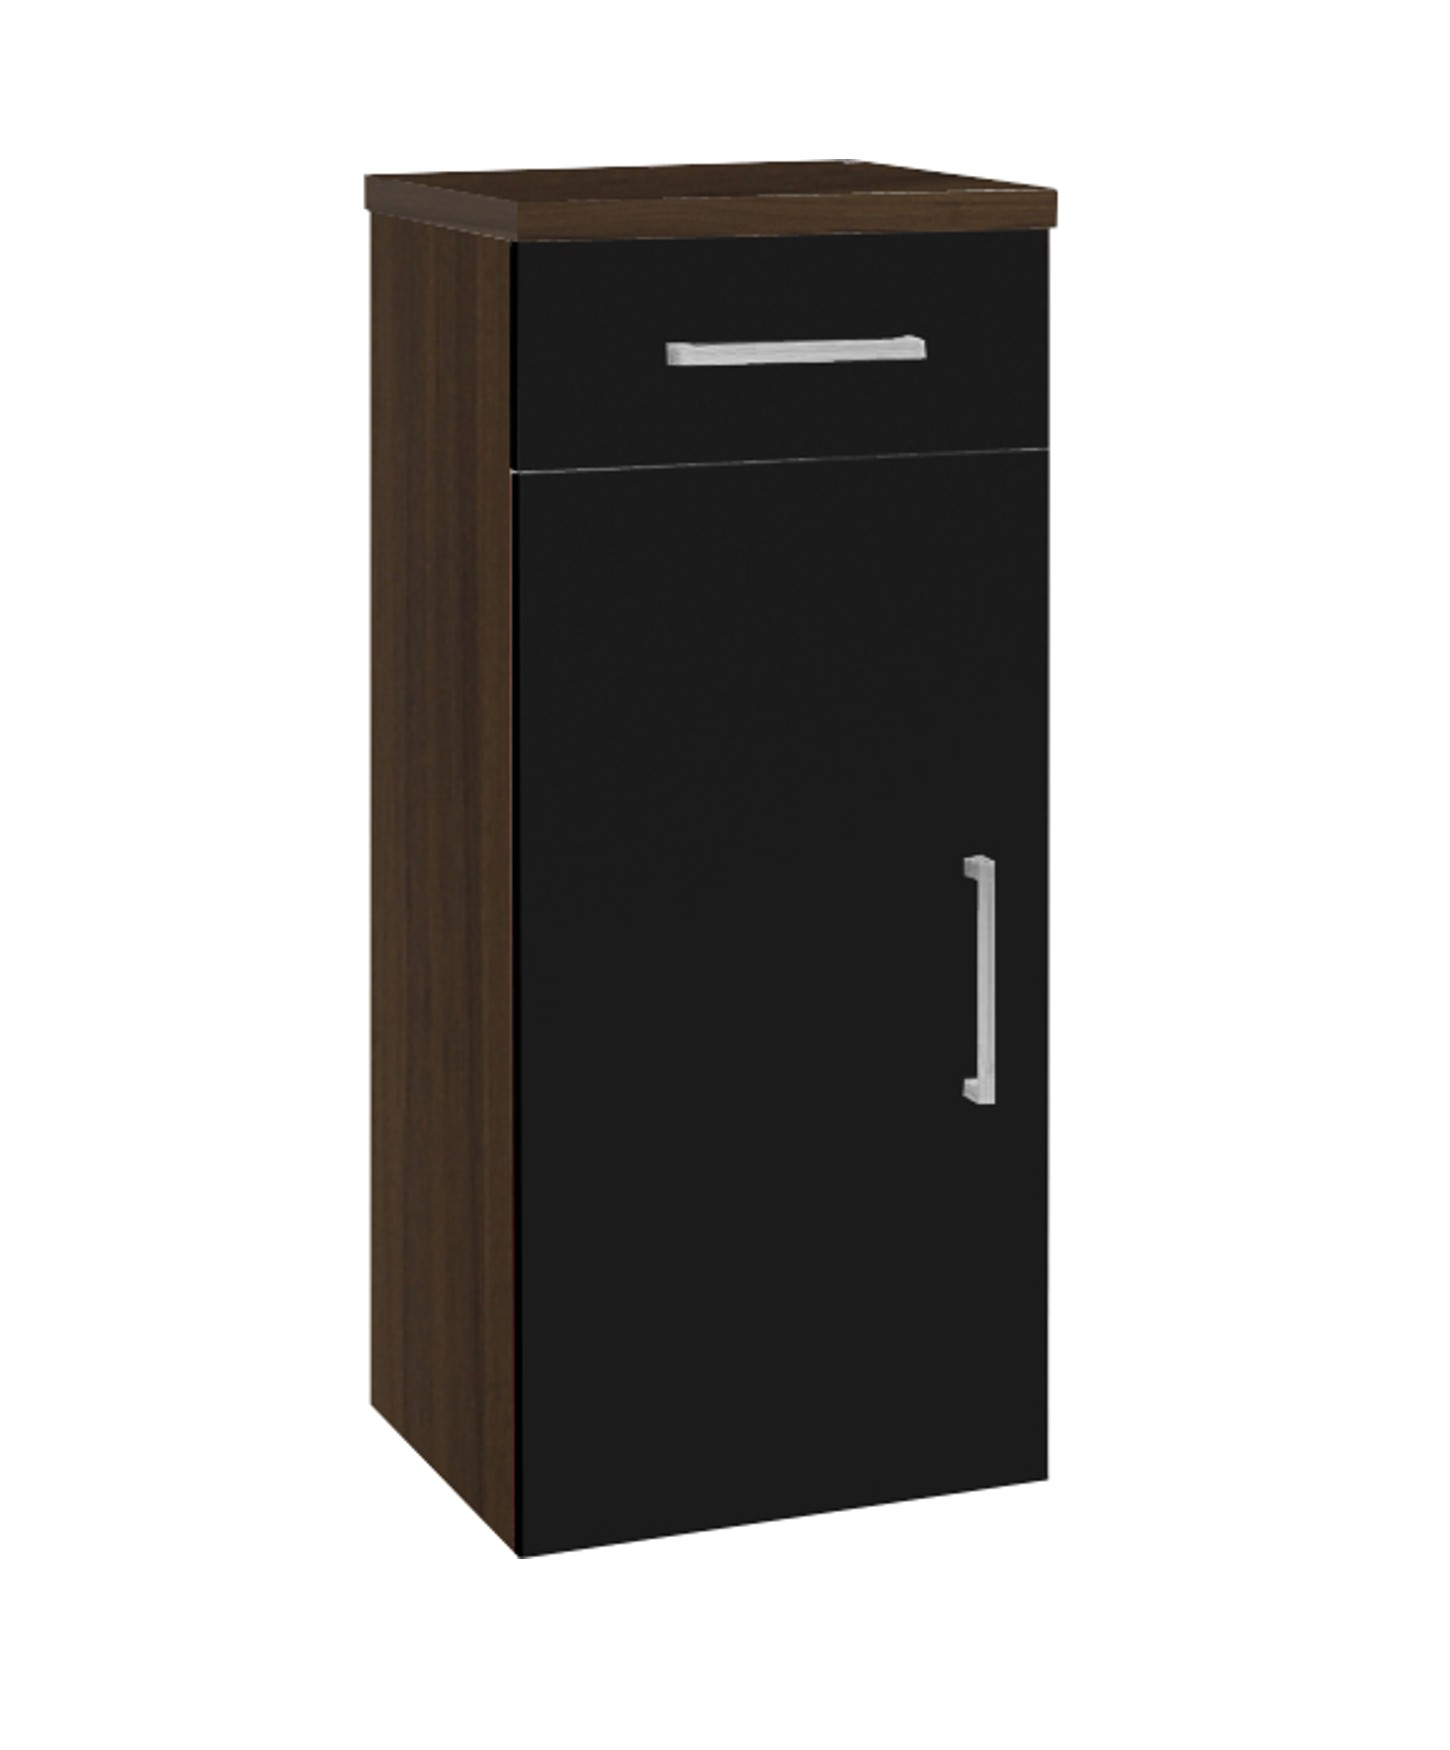 posseik bad unterschrank adelano badschrank badezimmerschrank 30 cm schwarz ebay. Black Bedroom Furniture Sets. Home Design Ideas